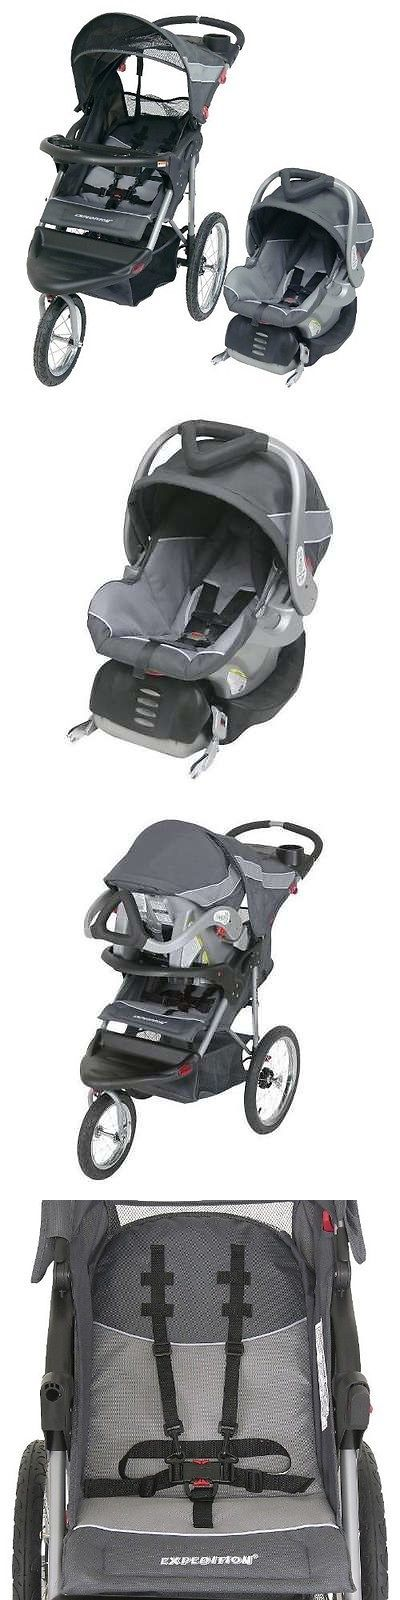 Baby Trend Expedition Jogger Jogging Stroller &... - Exclusively on #priceabate #priceabateBaby! BUY IT NOW ONLY $199